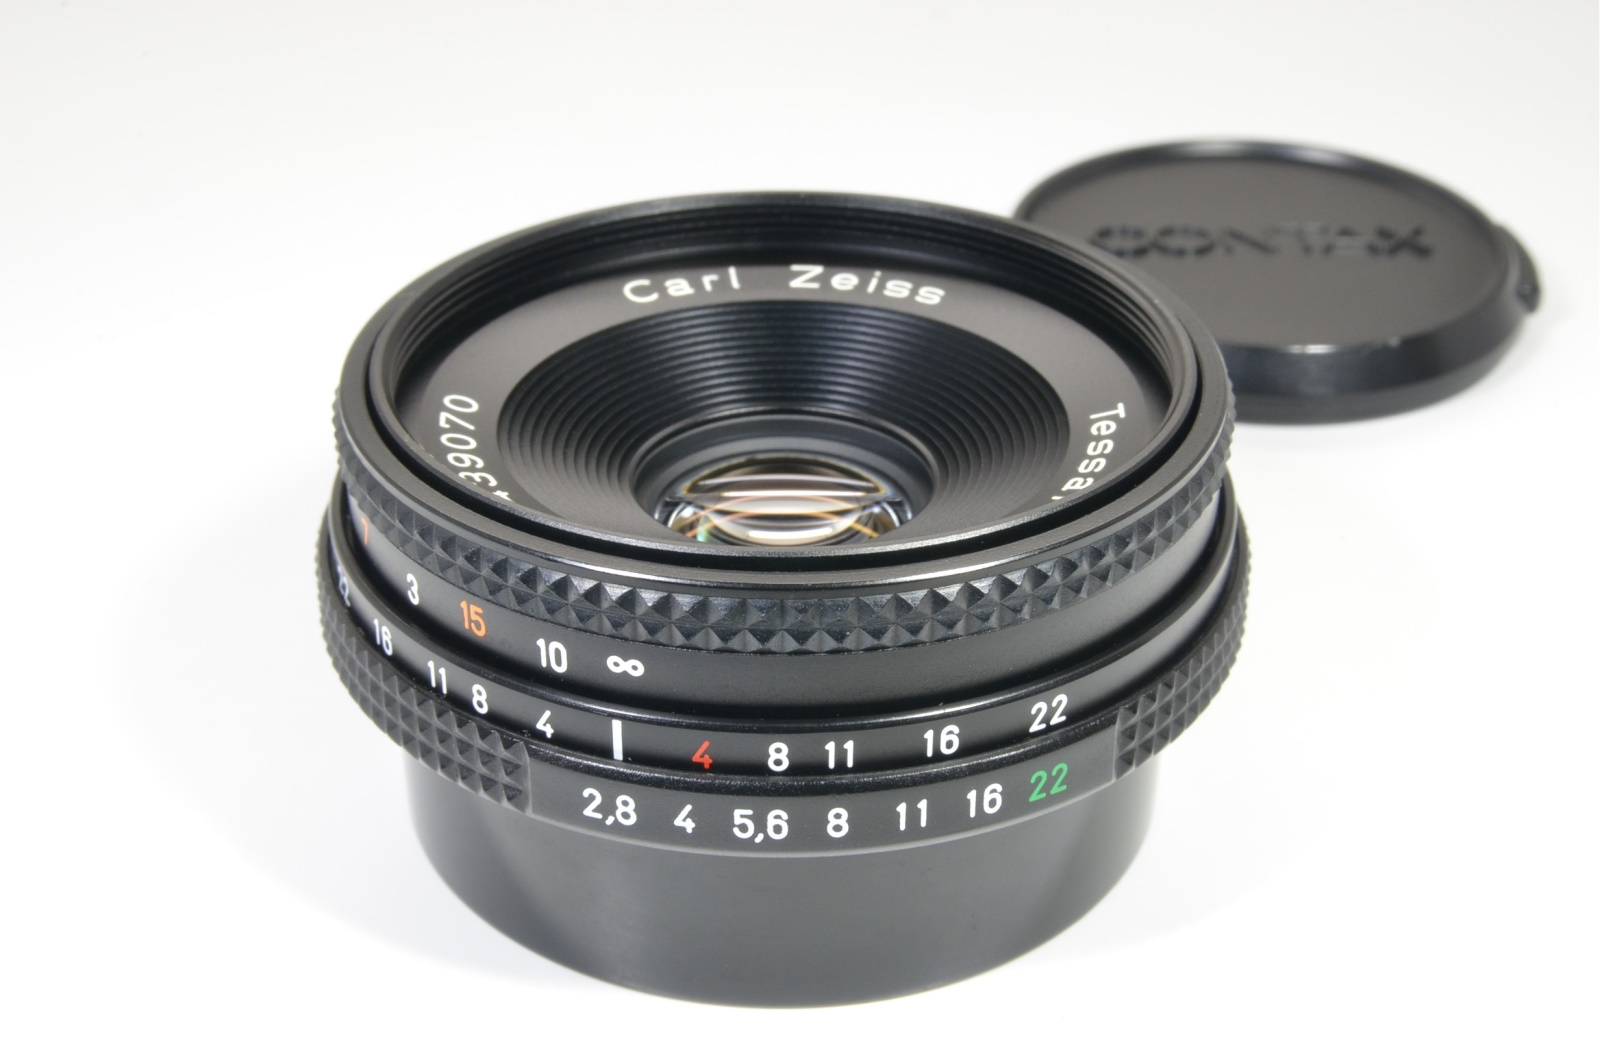 contax carl zeiss tessar t* 45mm f2.8 mmj japan shooting tested